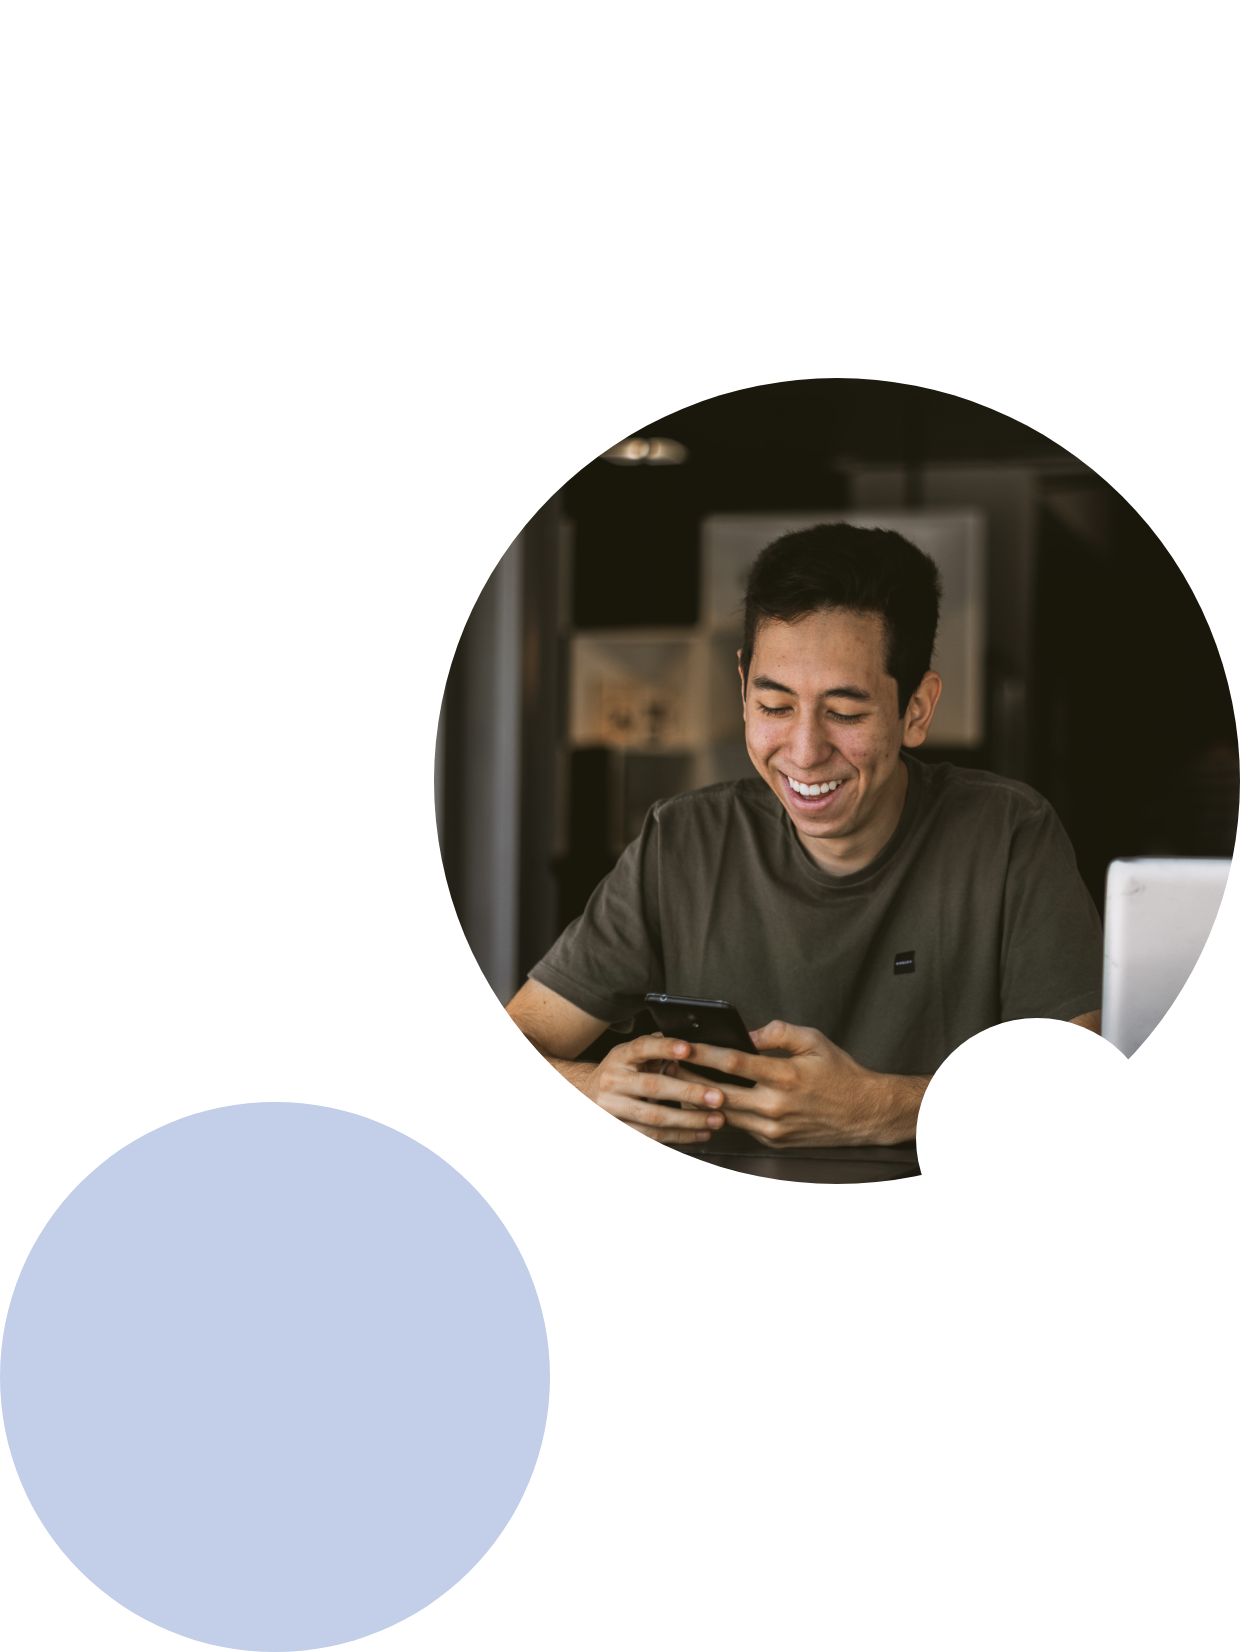 image of a man smiling while texting 2